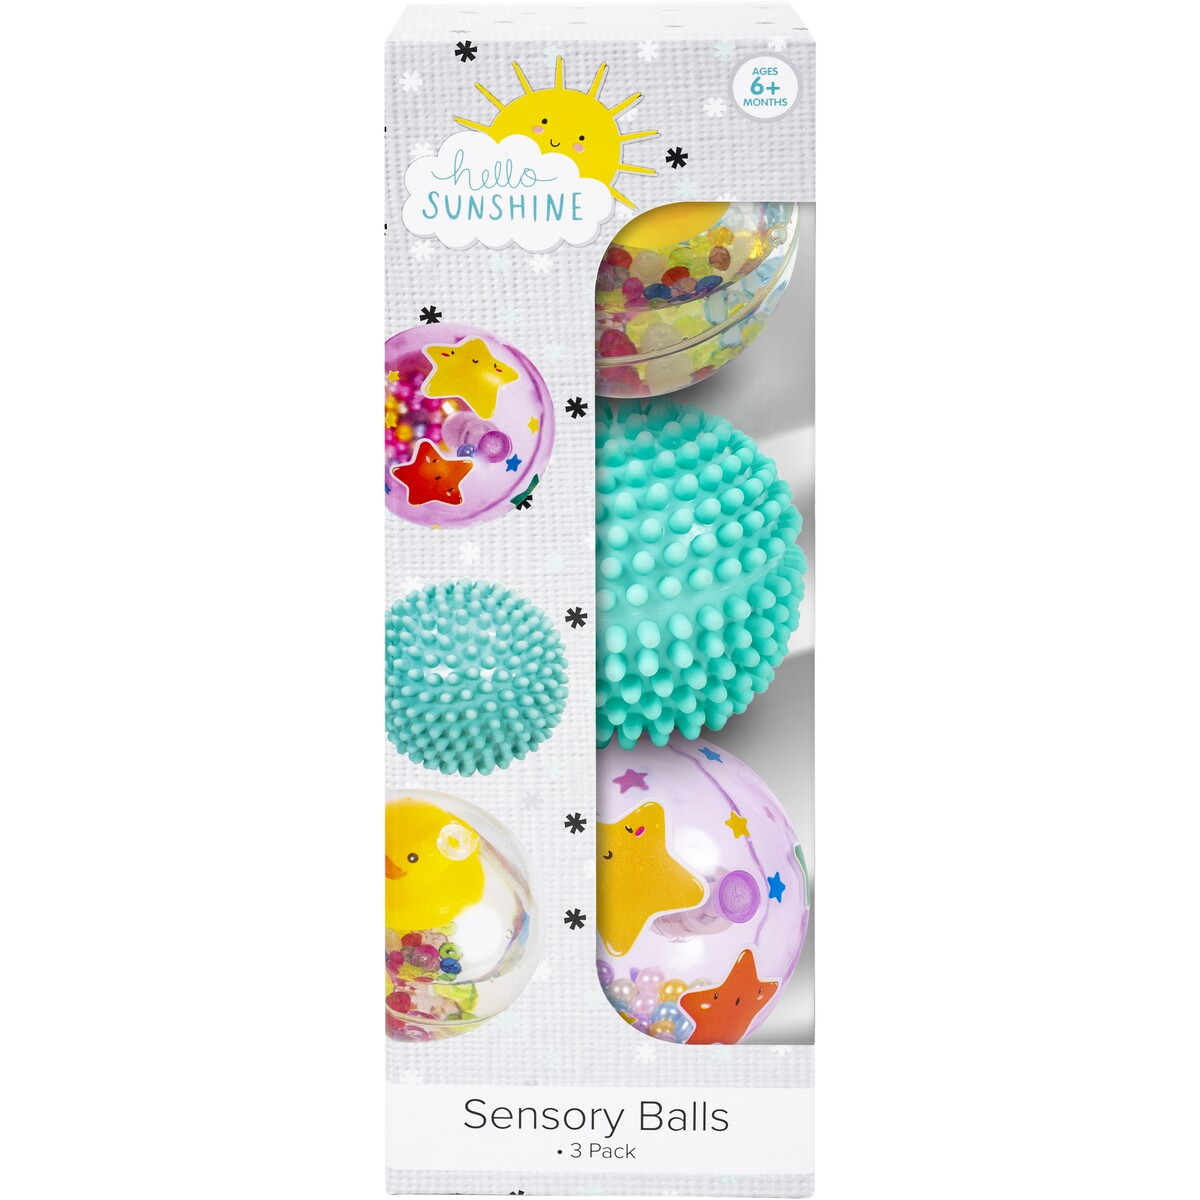 HELLO SUNSHINE SENSORY BALLS 3 PACK